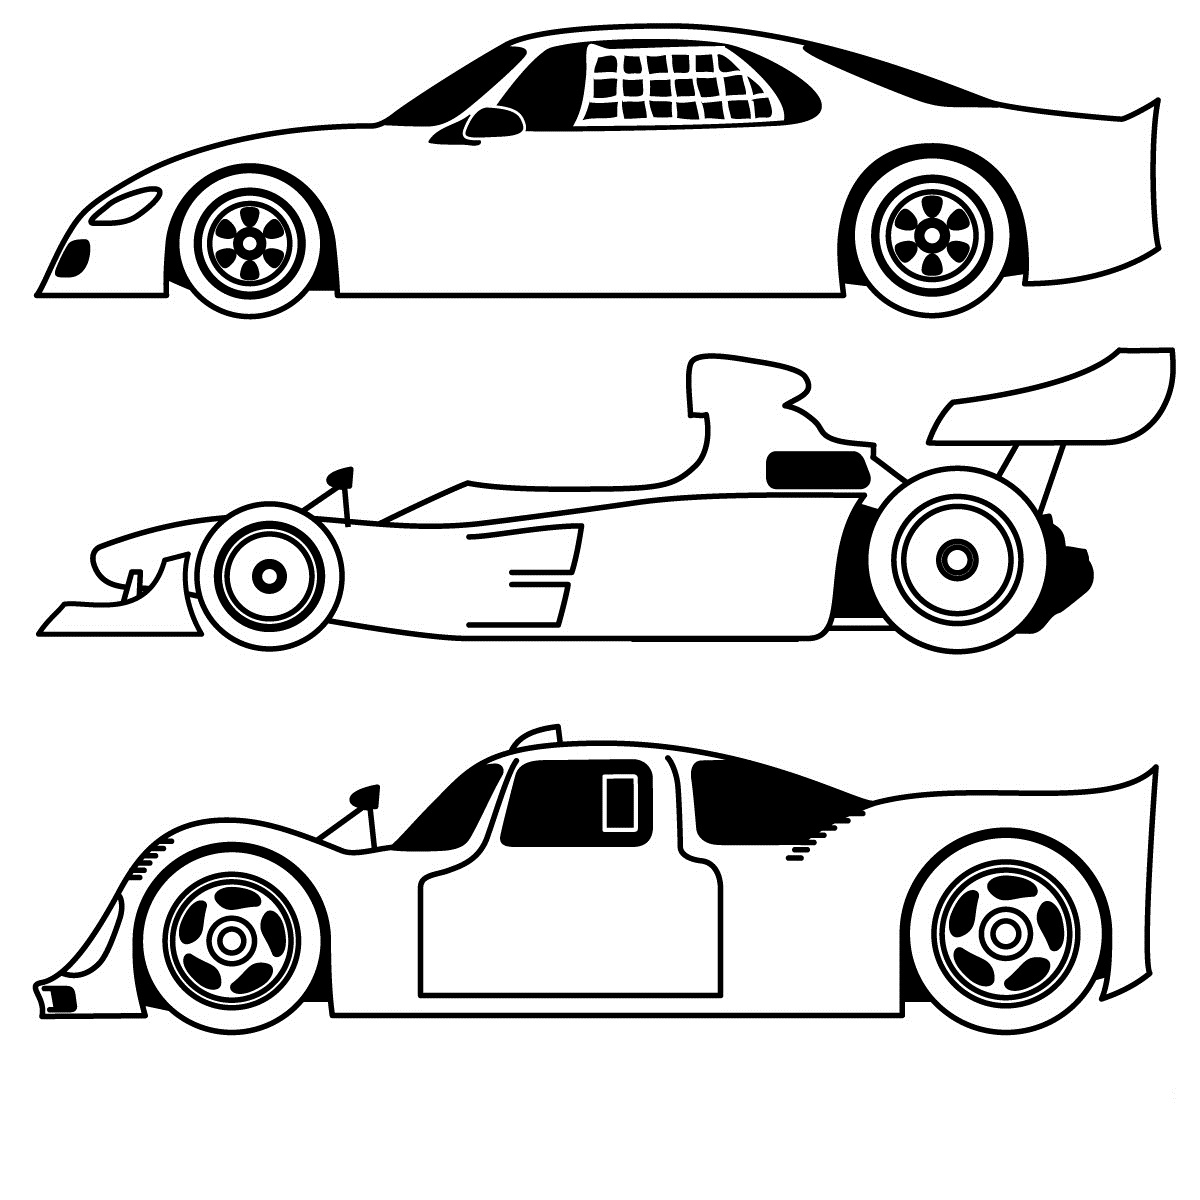 kids coloring pages cars cars to color for kids cars kids coloring pages pages cars kids coloring